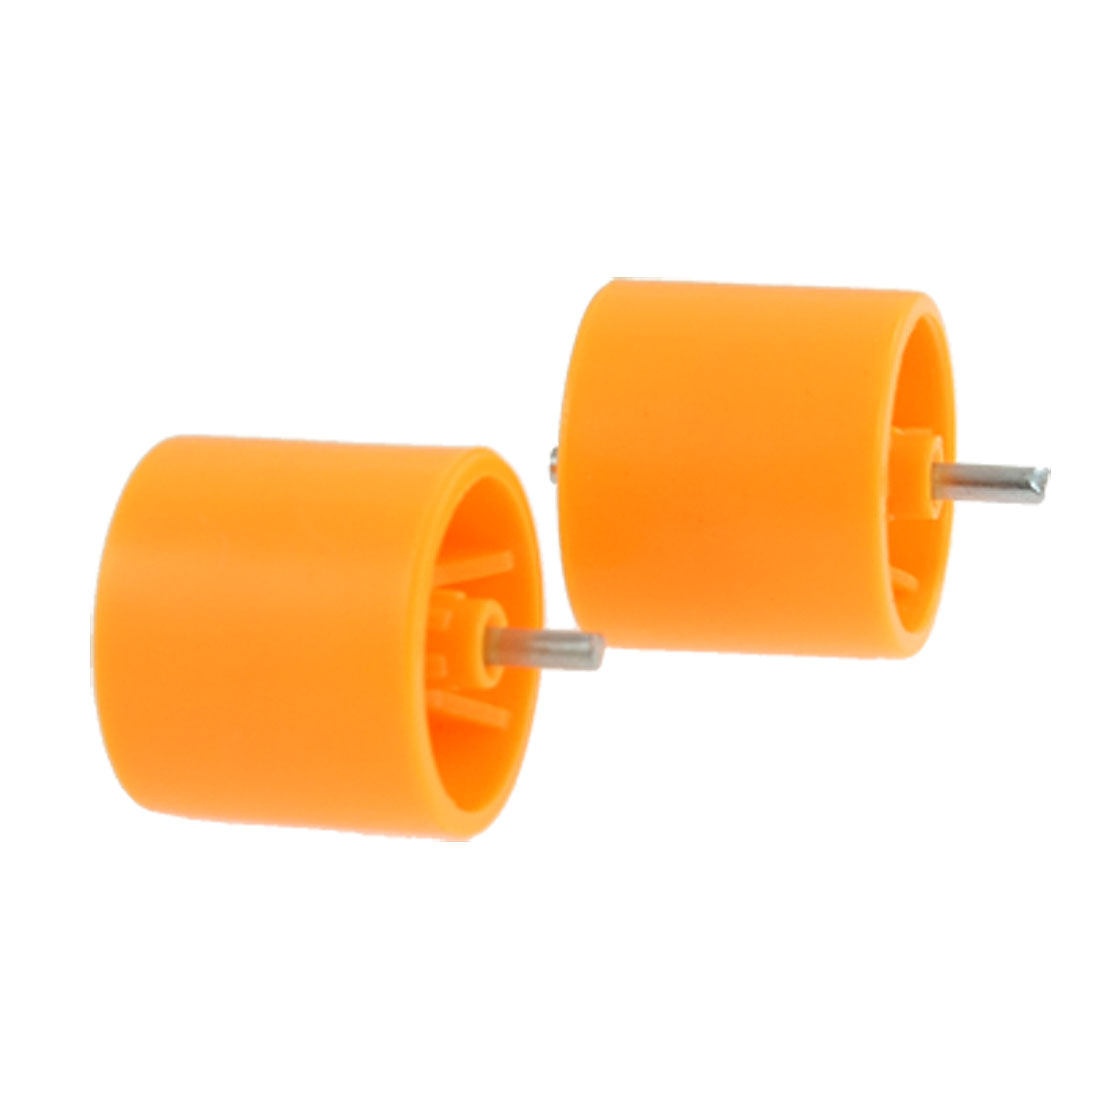 10 Pcs 27.4mm Outside Diameter Roller Conveyor Nylon Wheels Orange